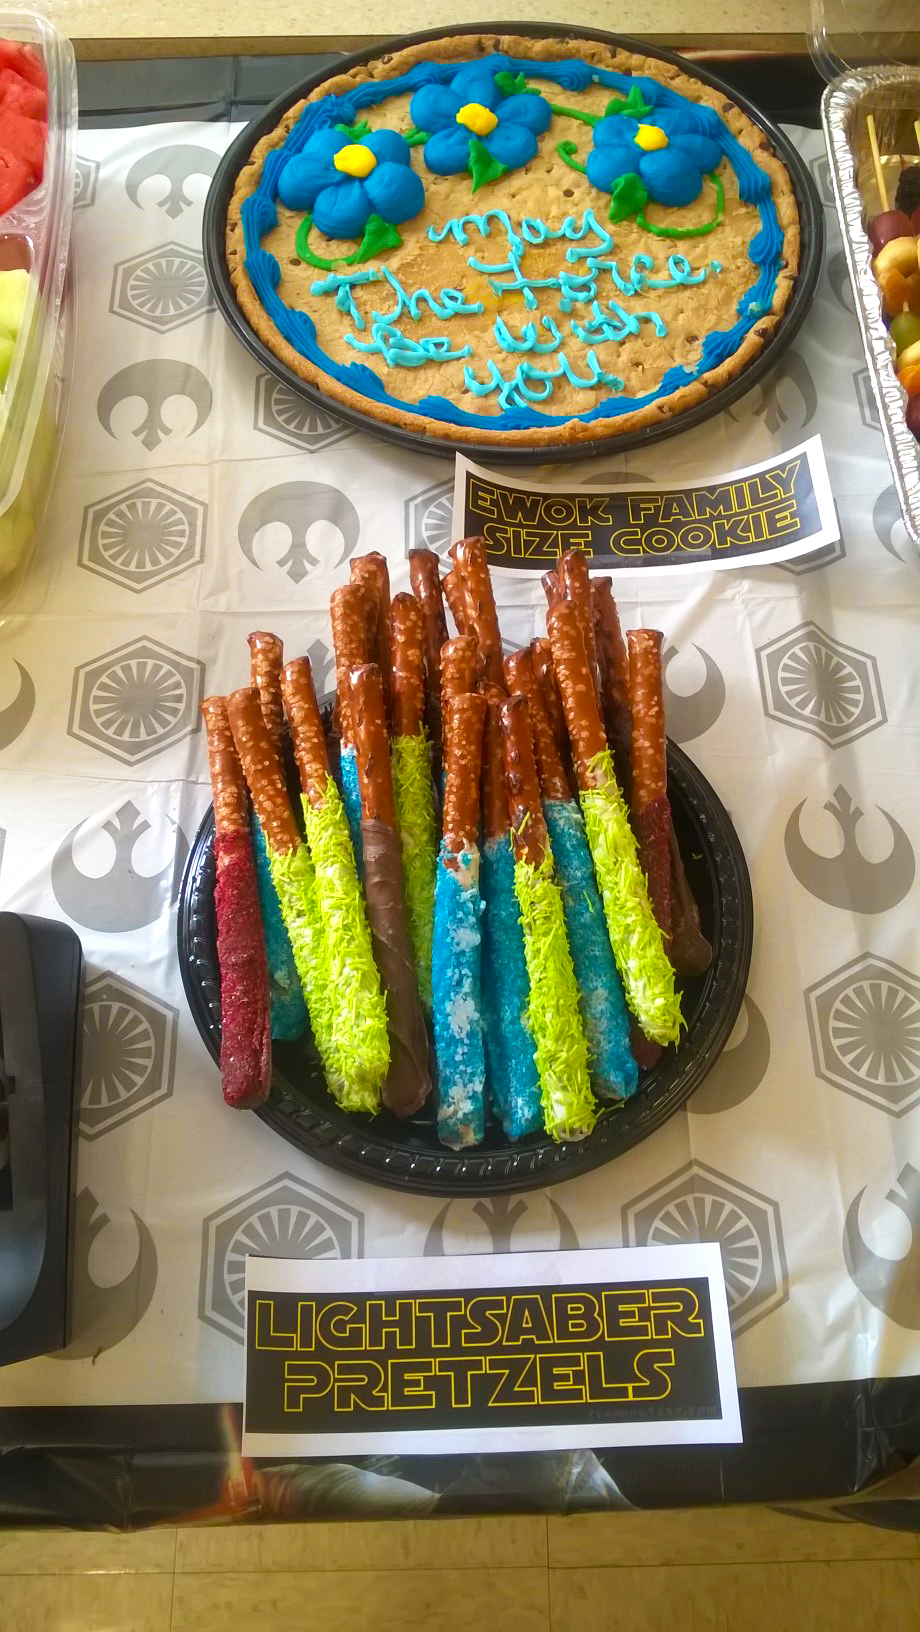 Lightsaber pretzel sticks